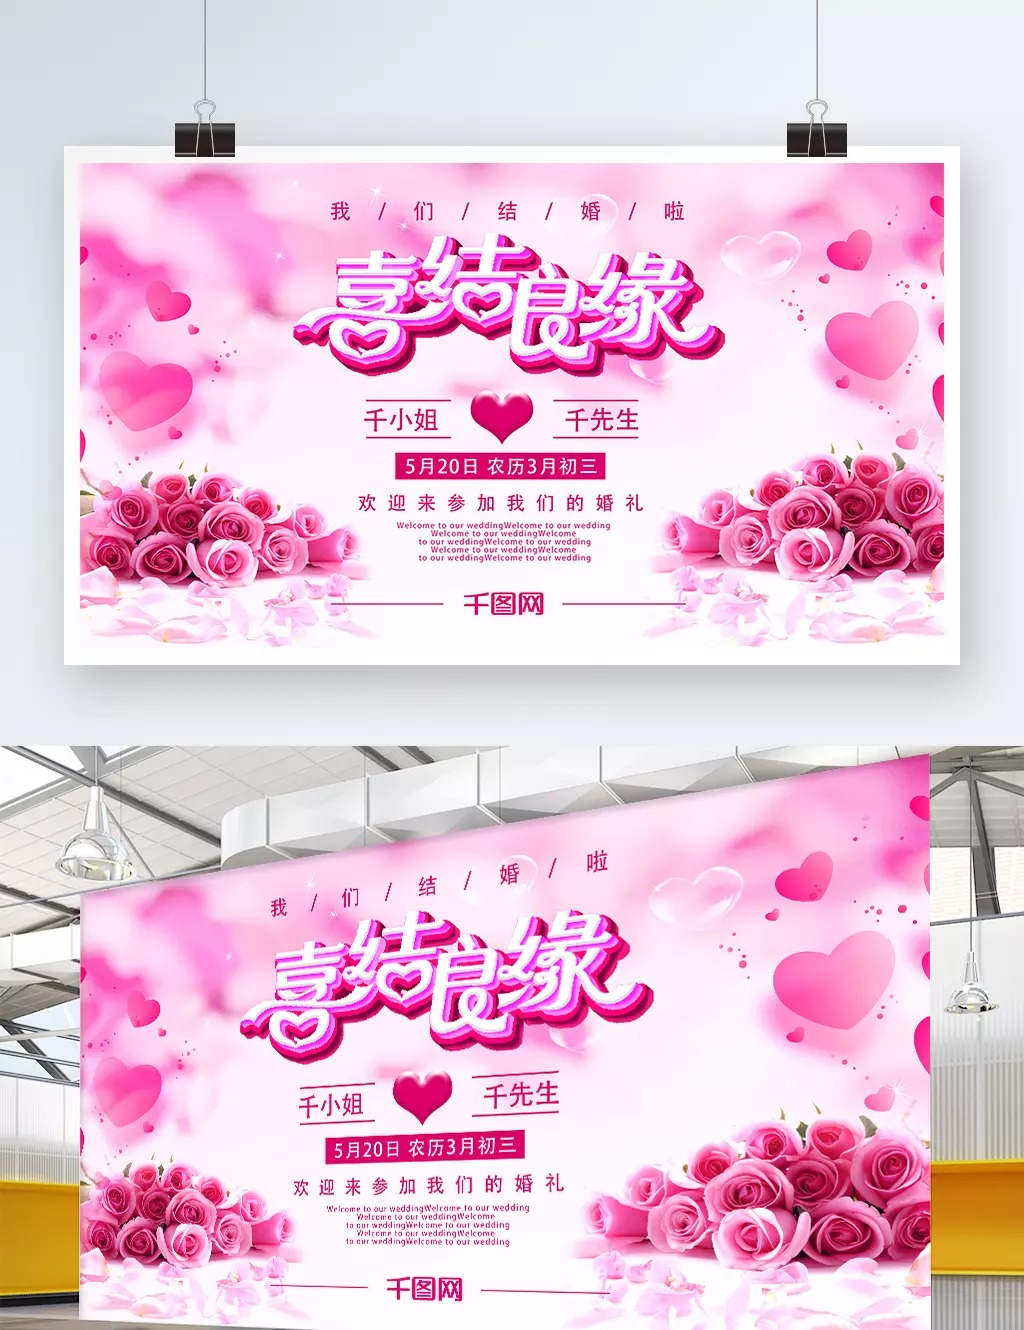 purple knot wedding wedding poster poster marriage template for free download on pngtree https pngtree com freepng purple knot wedding wedding poster poster marriage 4801946 html